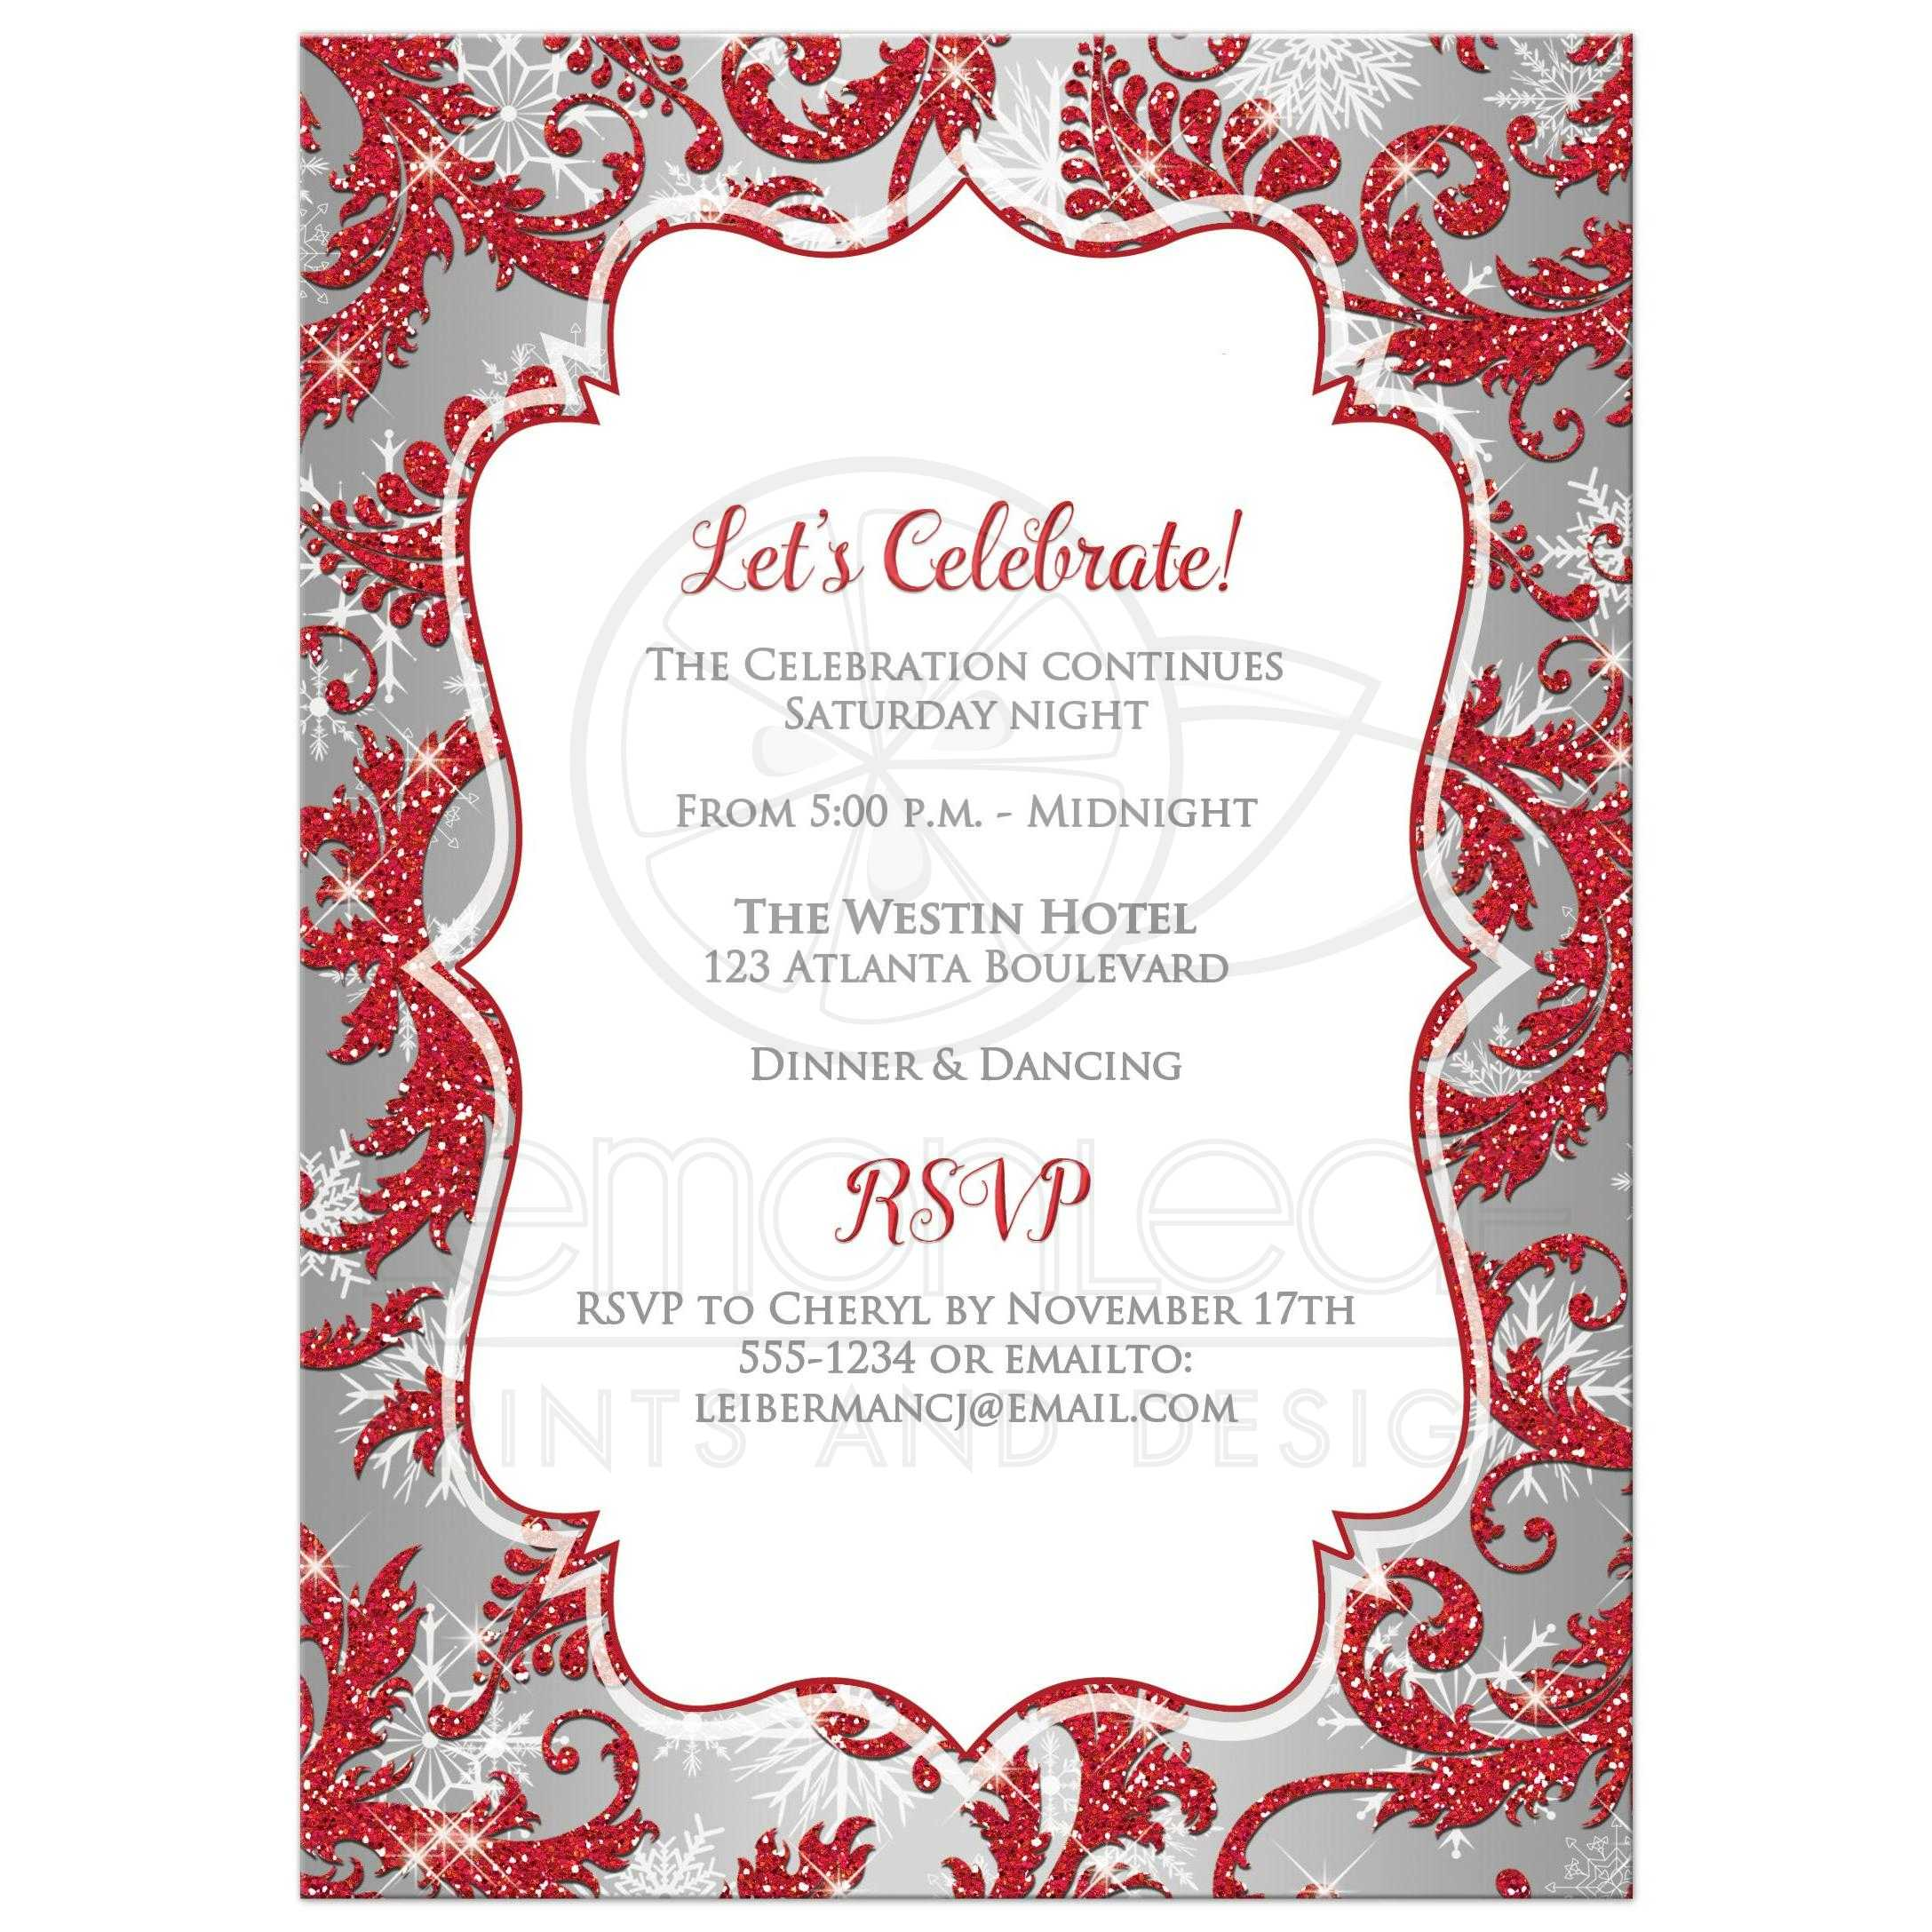 Printable Wedding Invitations Designs With Red And Silver: Winter Wonderland Red, Silver